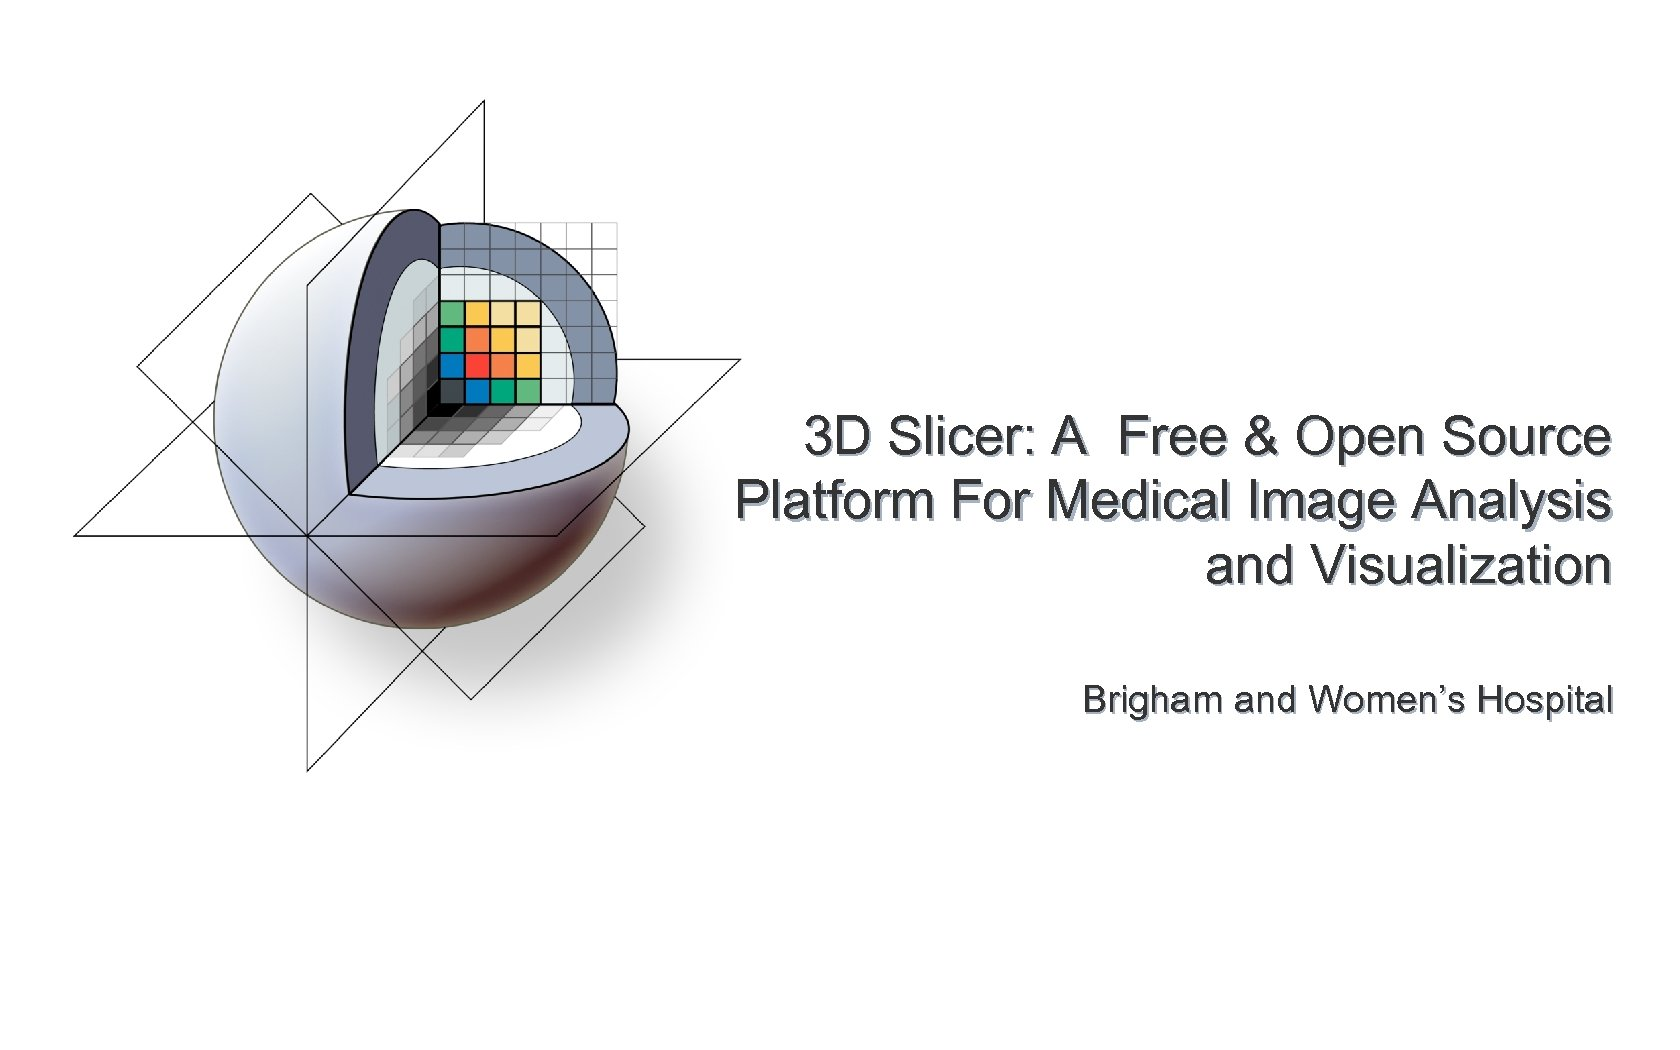 3 D Slicer: A Free & Open Source Platform For Medical Image Analysis and